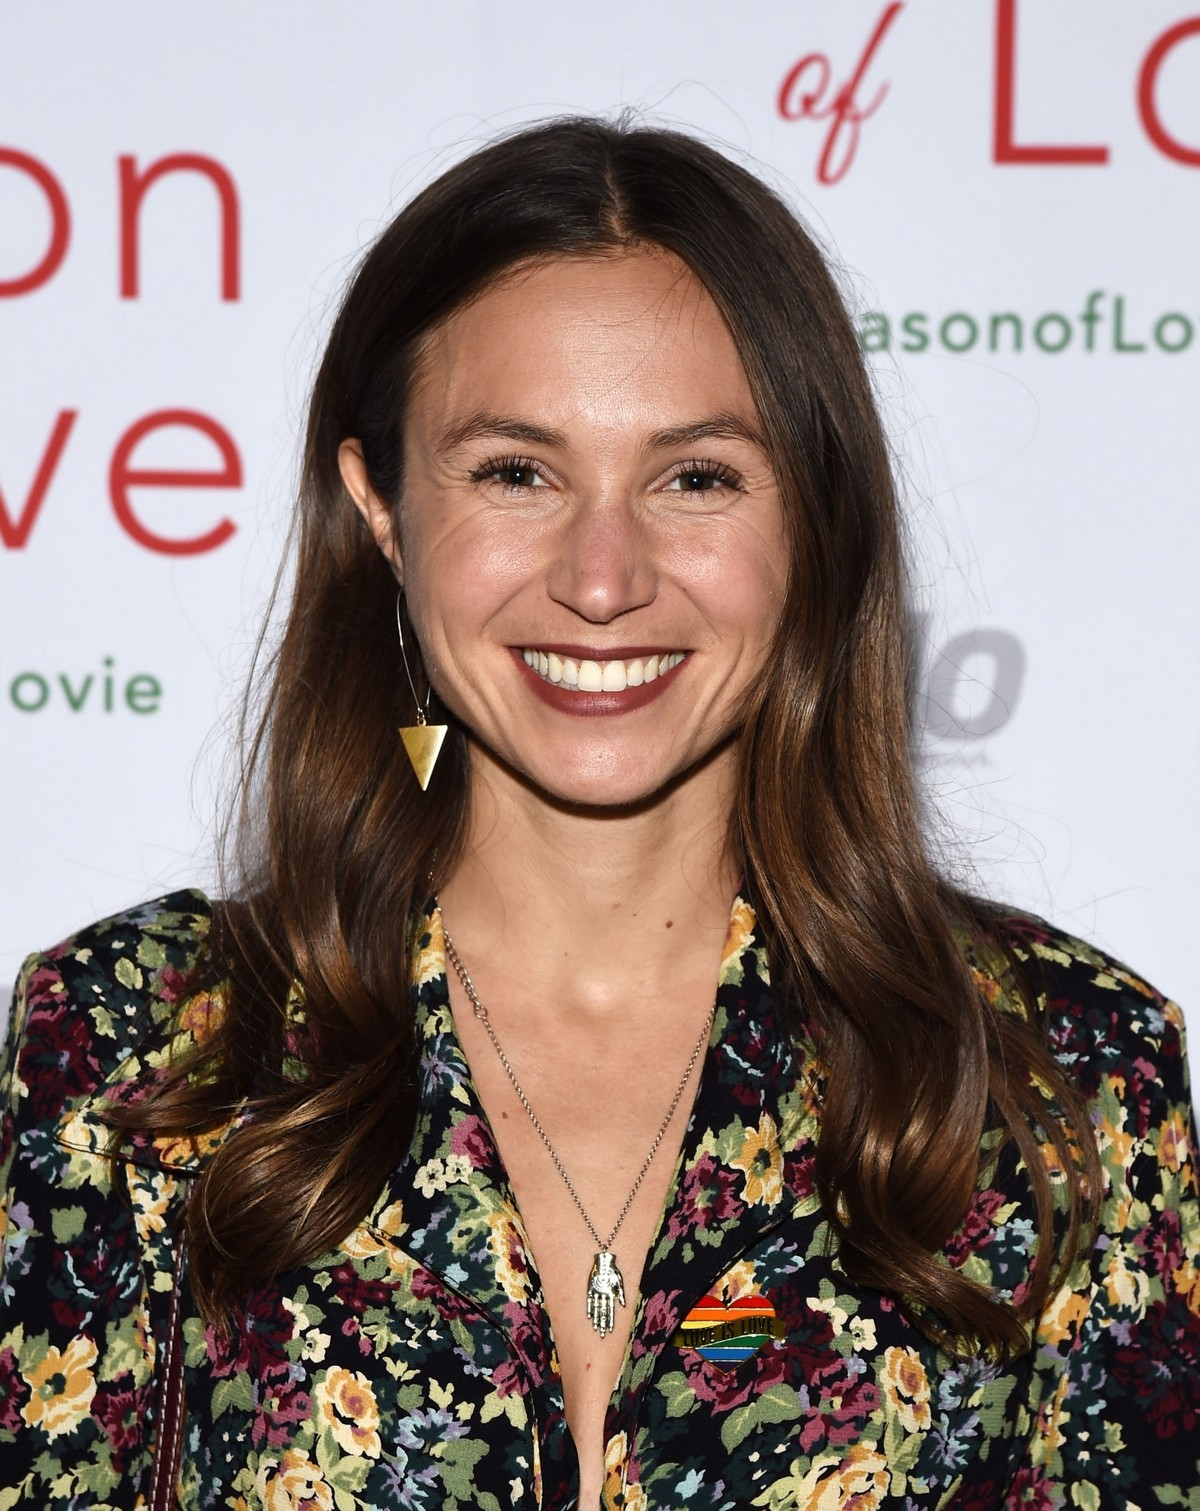 """Dominique Provost-Chalkley arrives at Premiere of """"Season of Love"""" at the Landmark Theater in Los Angeles 2019/11/21 1"""